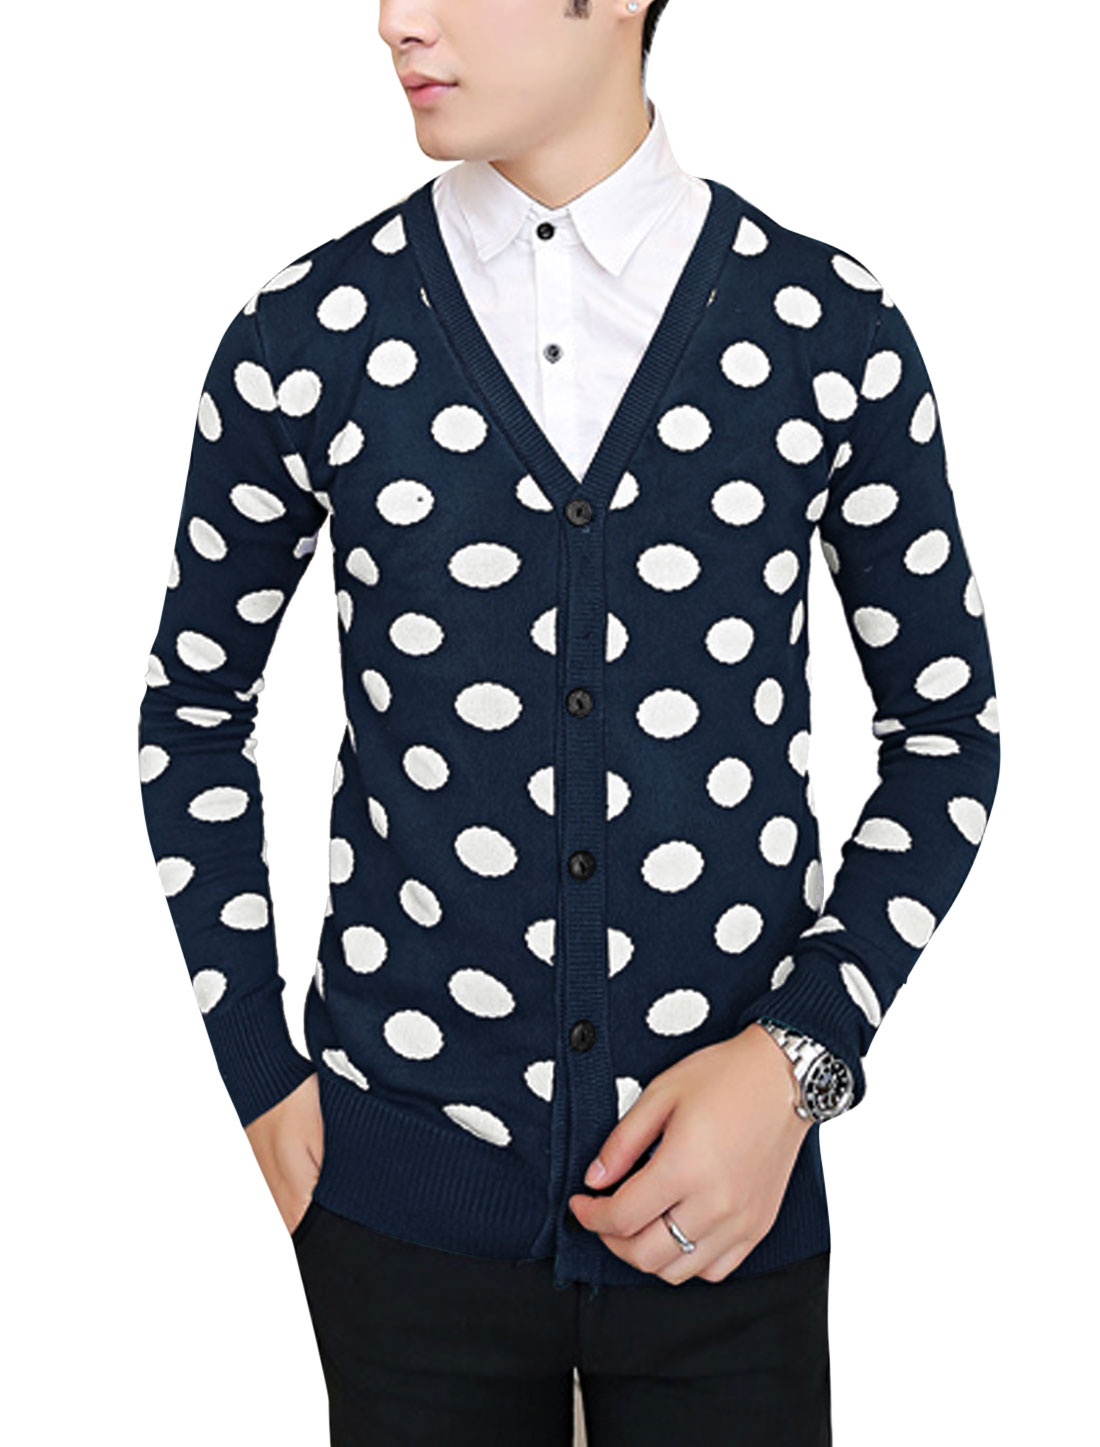 Men Single Breasted Dots Pattern Stylish Cozy Fit Cardigan Navy Blue S